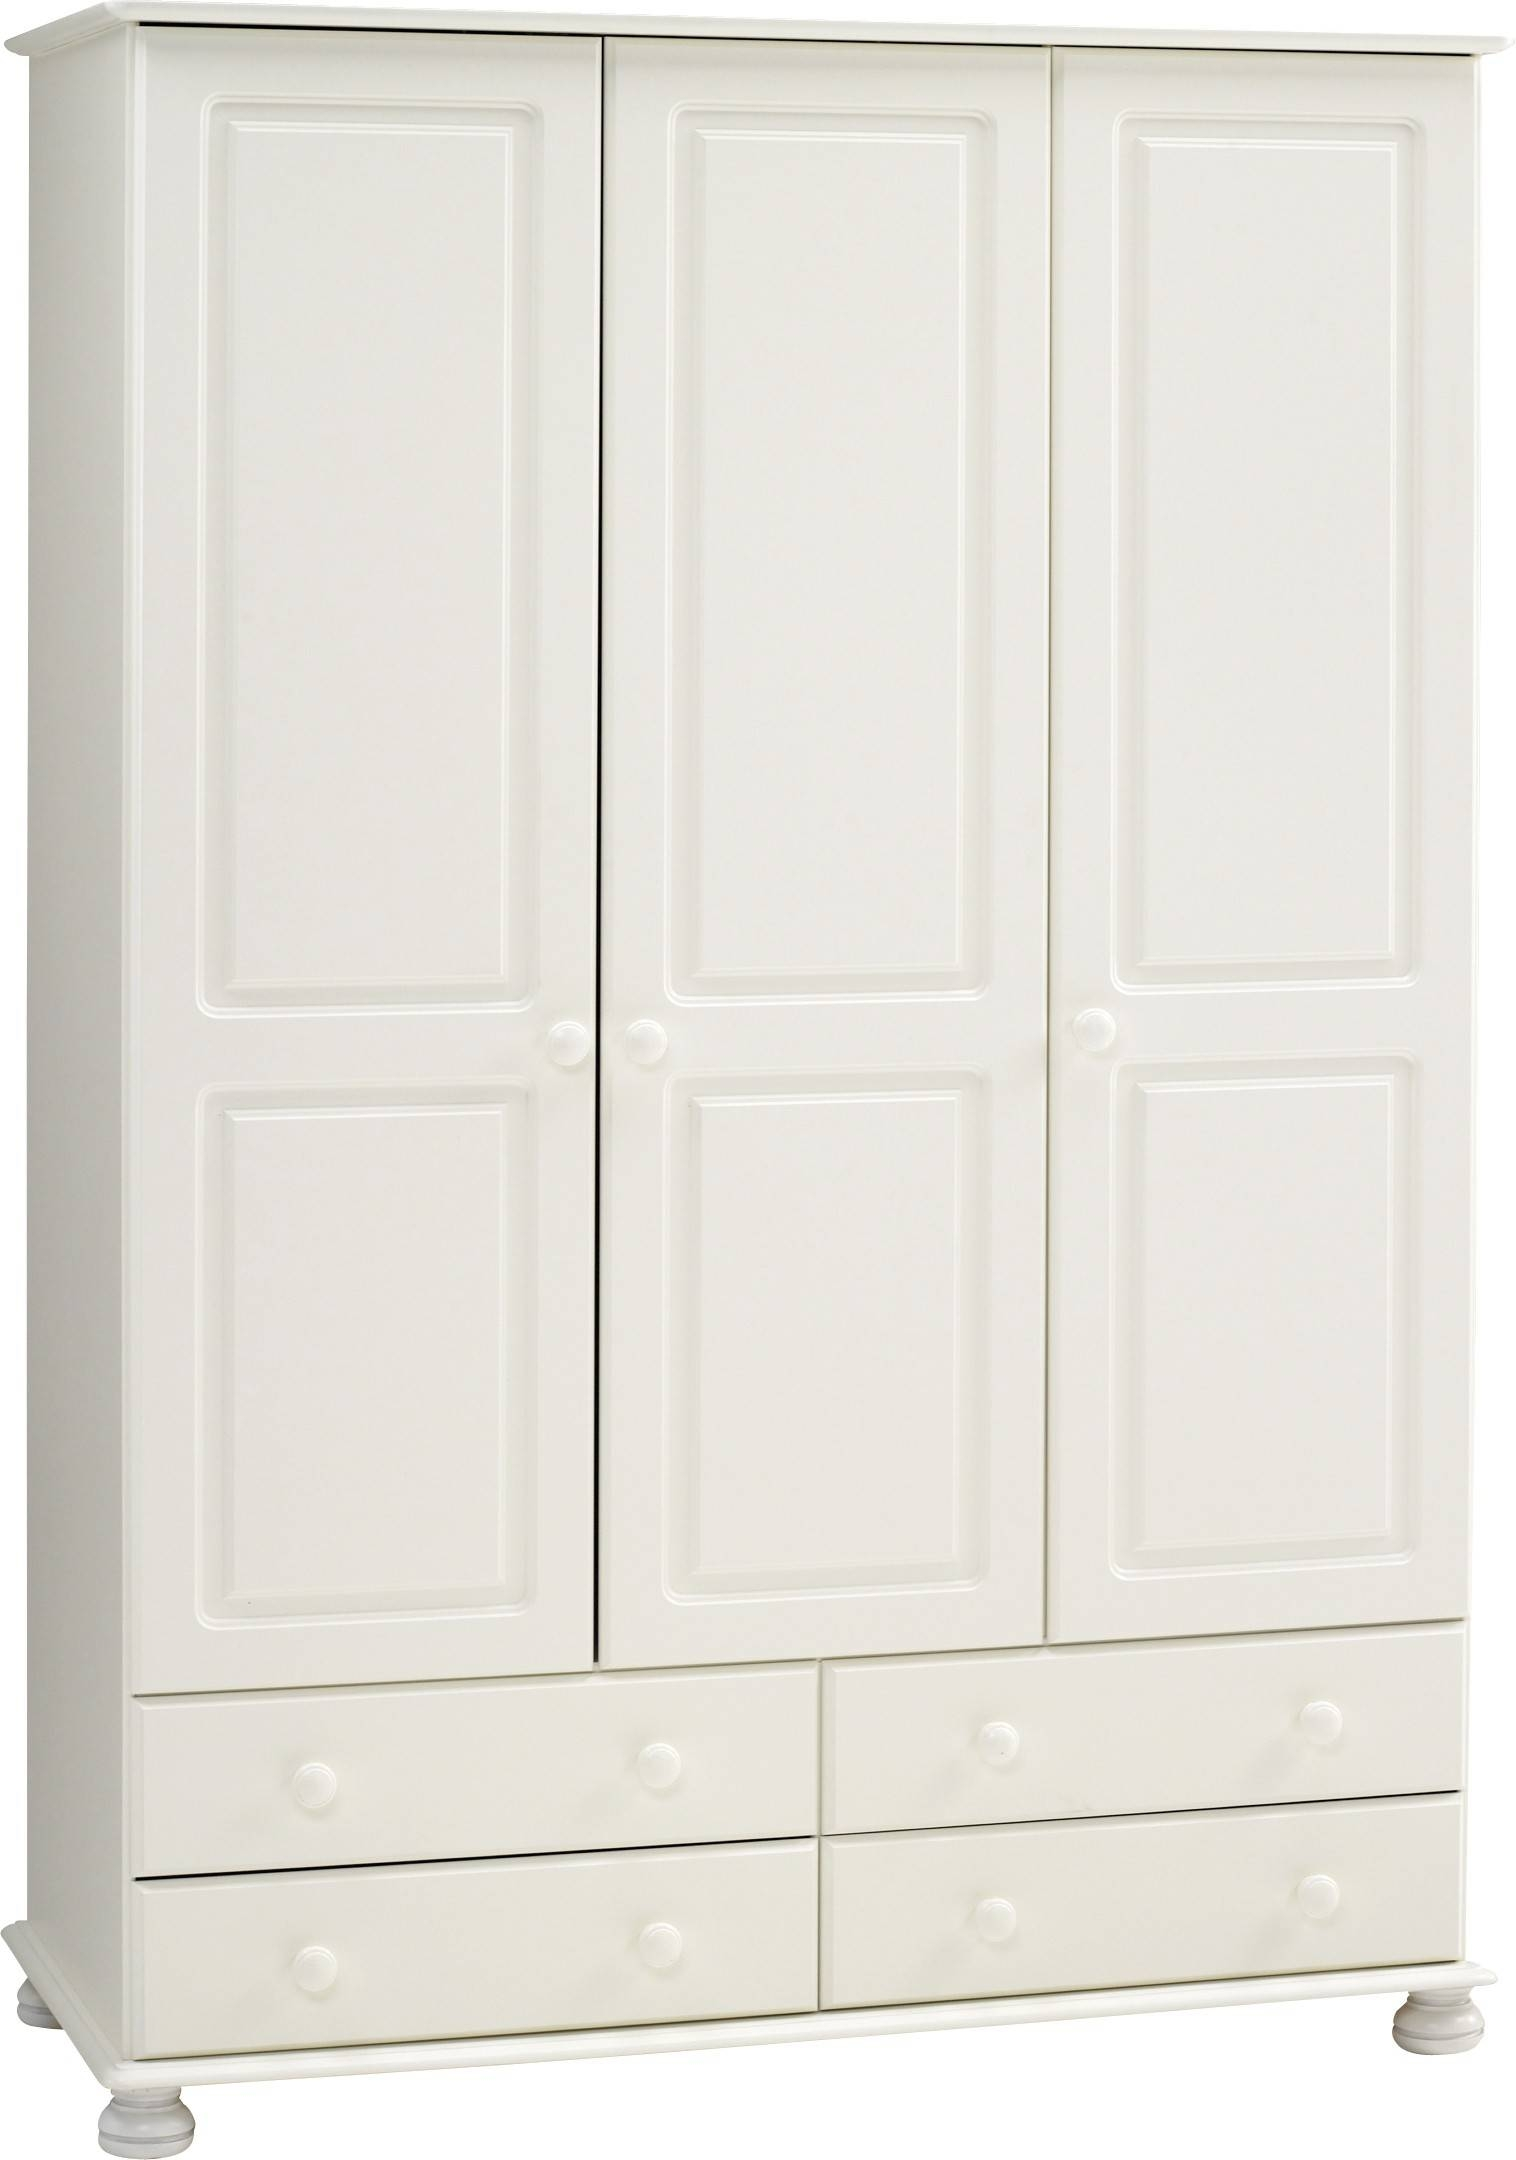 Richmond White Triple Wardrobe | Bedroom Furniture Direct inside Richmond Wardrobes (Image 9 of 15)